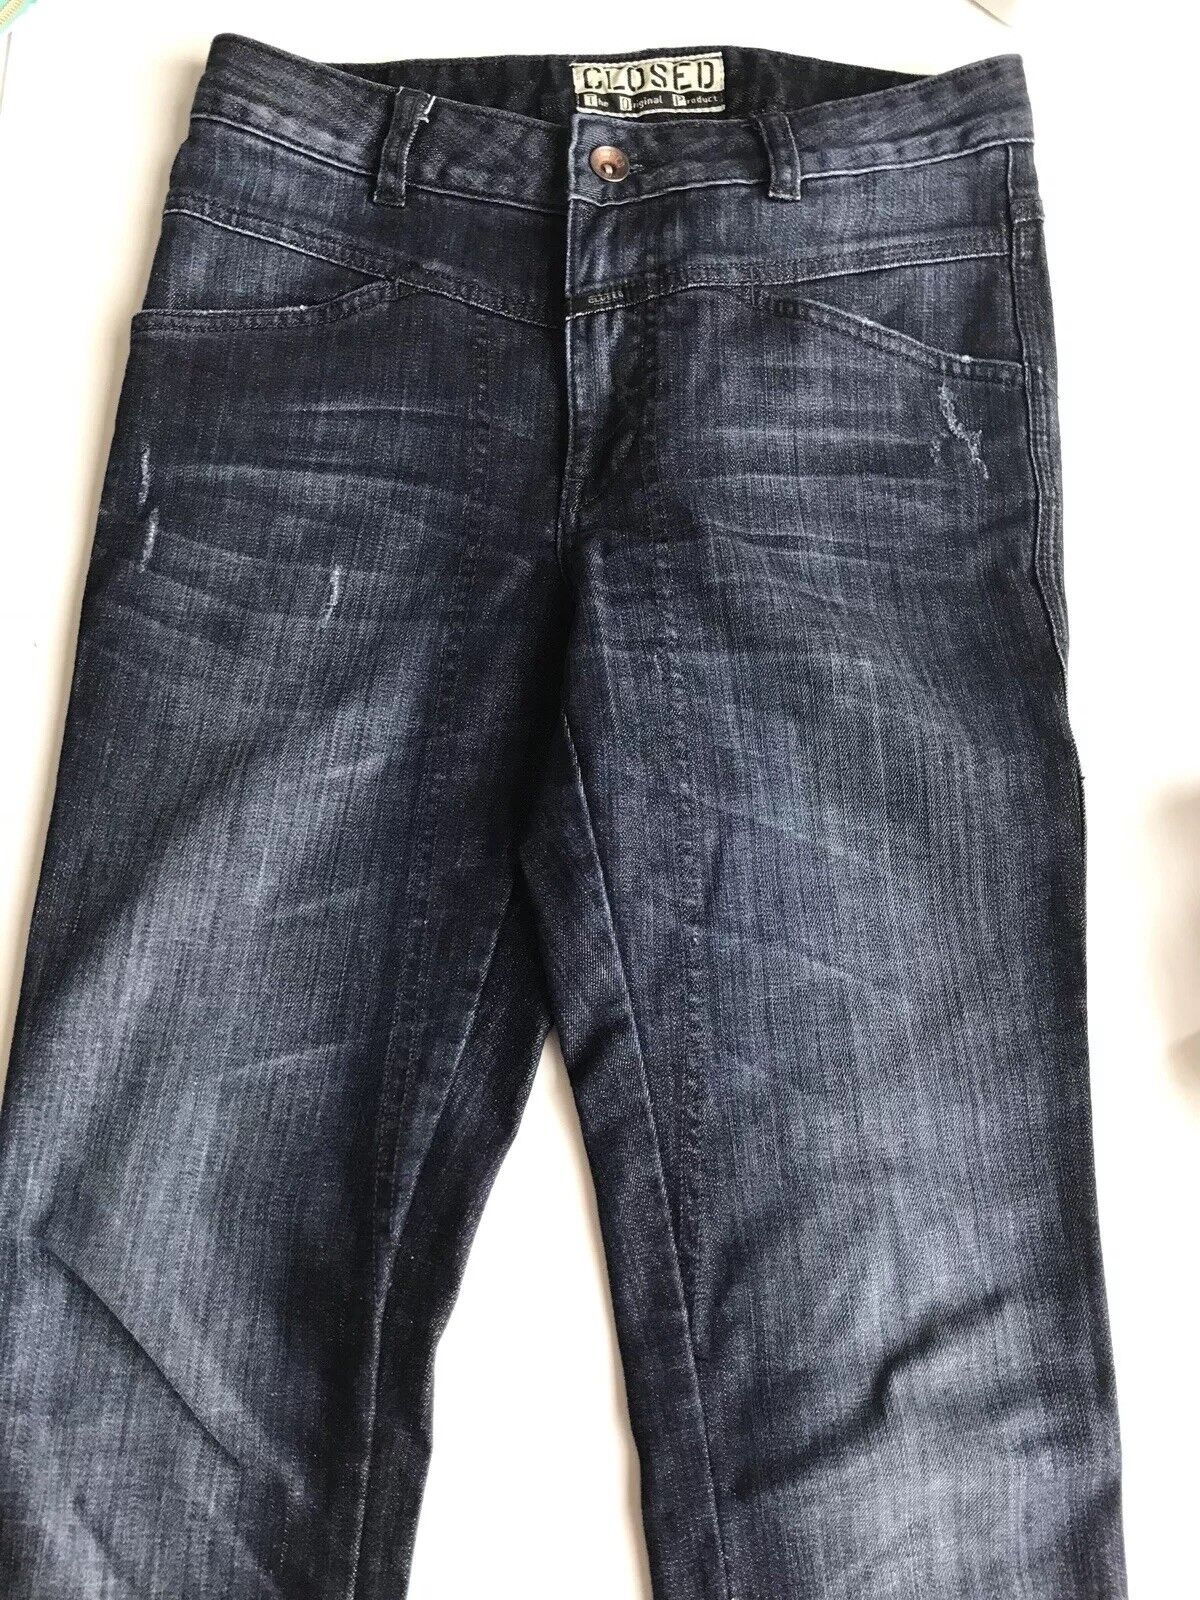 Closed Closed Closed Jeans Used Look Destroyed Sue C9157704F-7E 103a3e